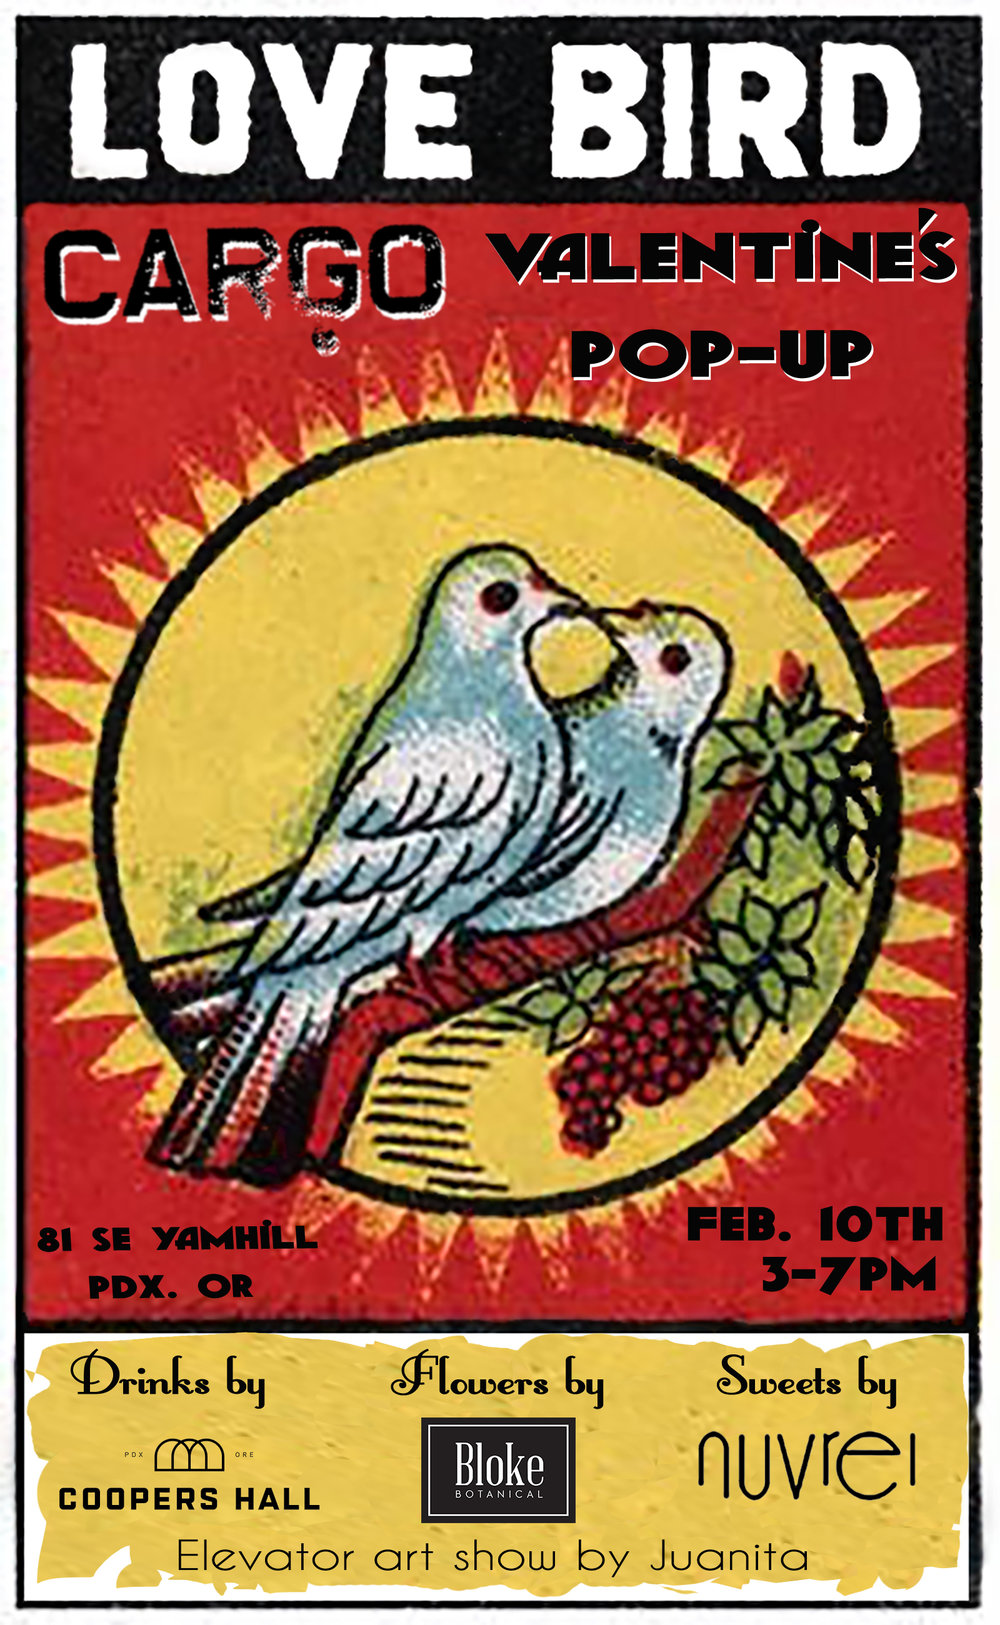 Valentines Pop-up - February 10th 2018